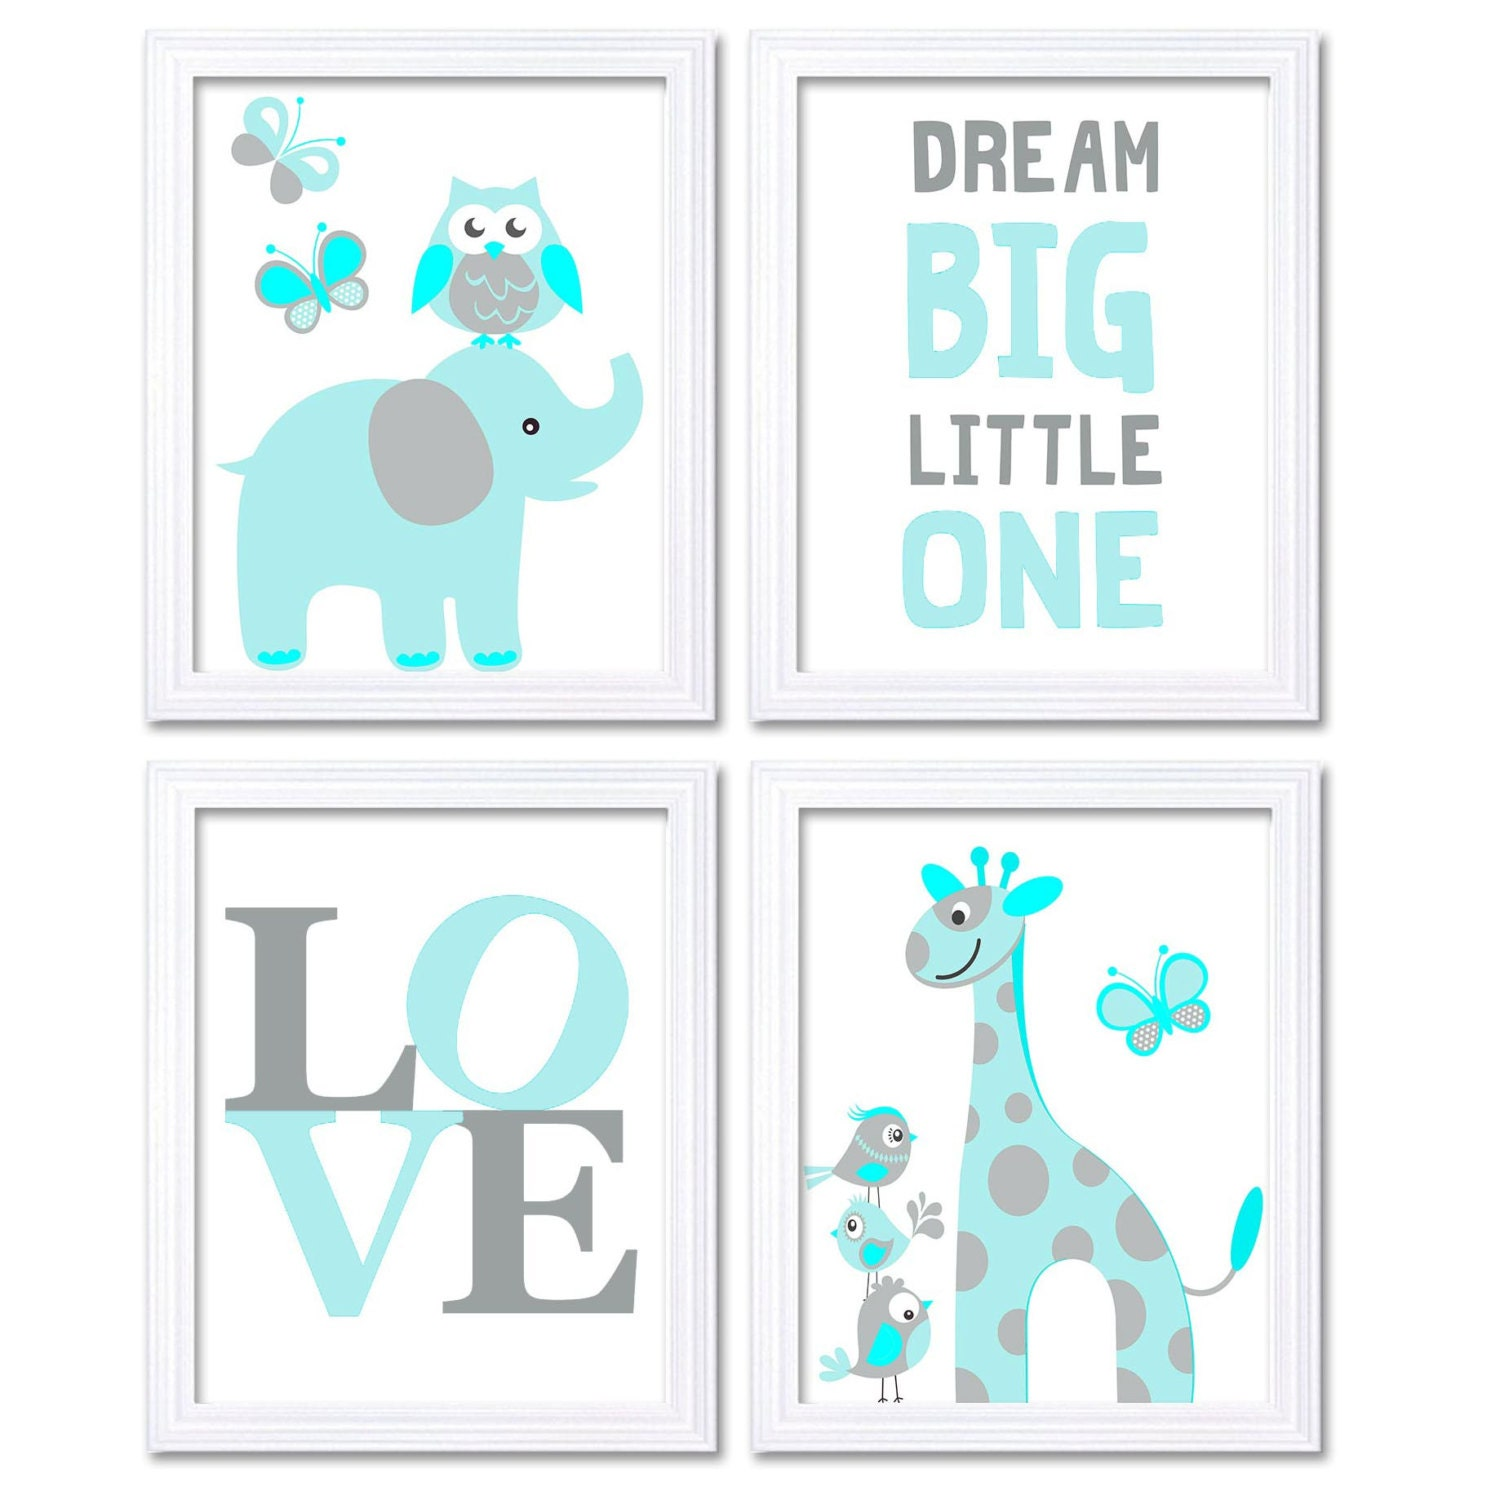 Blue Turquoise Aqua Elephant Giraffe Owl Nursery Art Dream Big Little One LOVE Set of 4 Prints Child